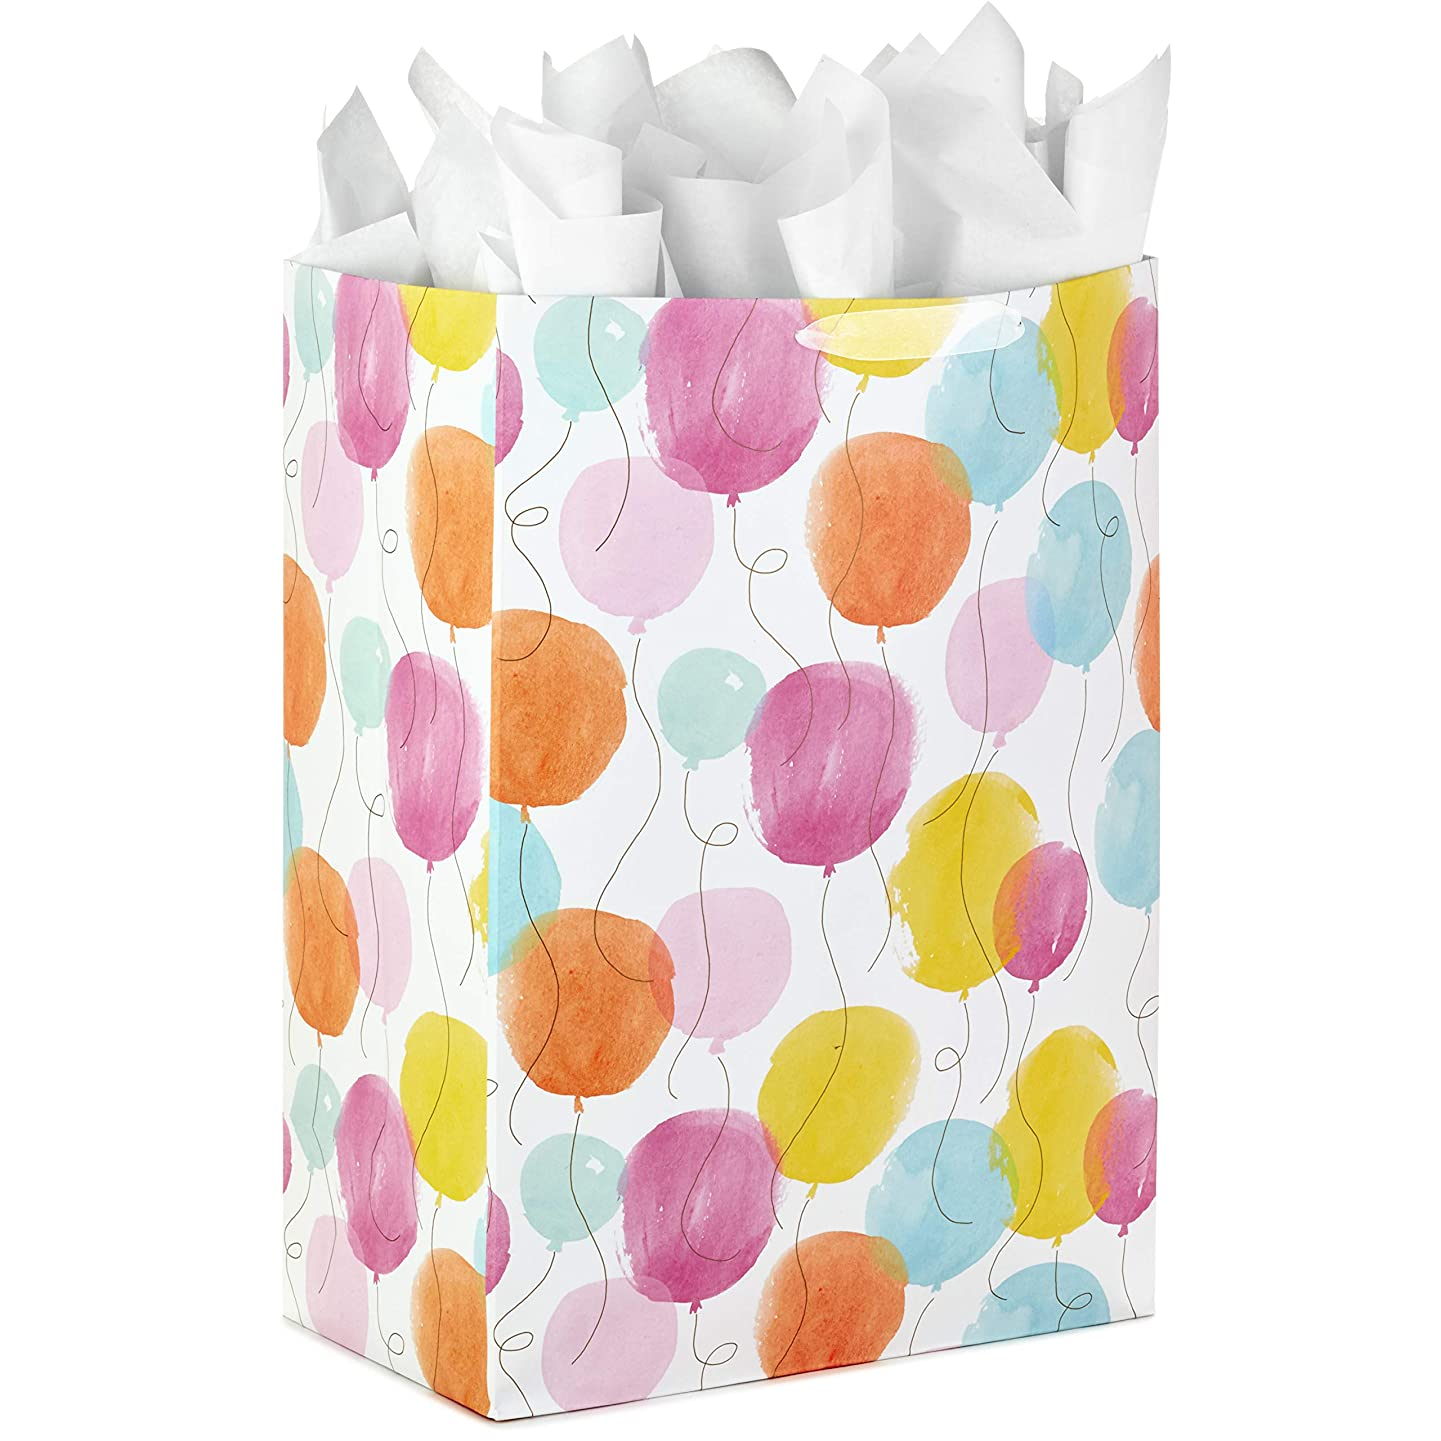 Hallmark Oversized Gift Bag with Tissue Paper for Birthdays, Anniversaries, Graduations, and Everyday Celebrations (Balloons)